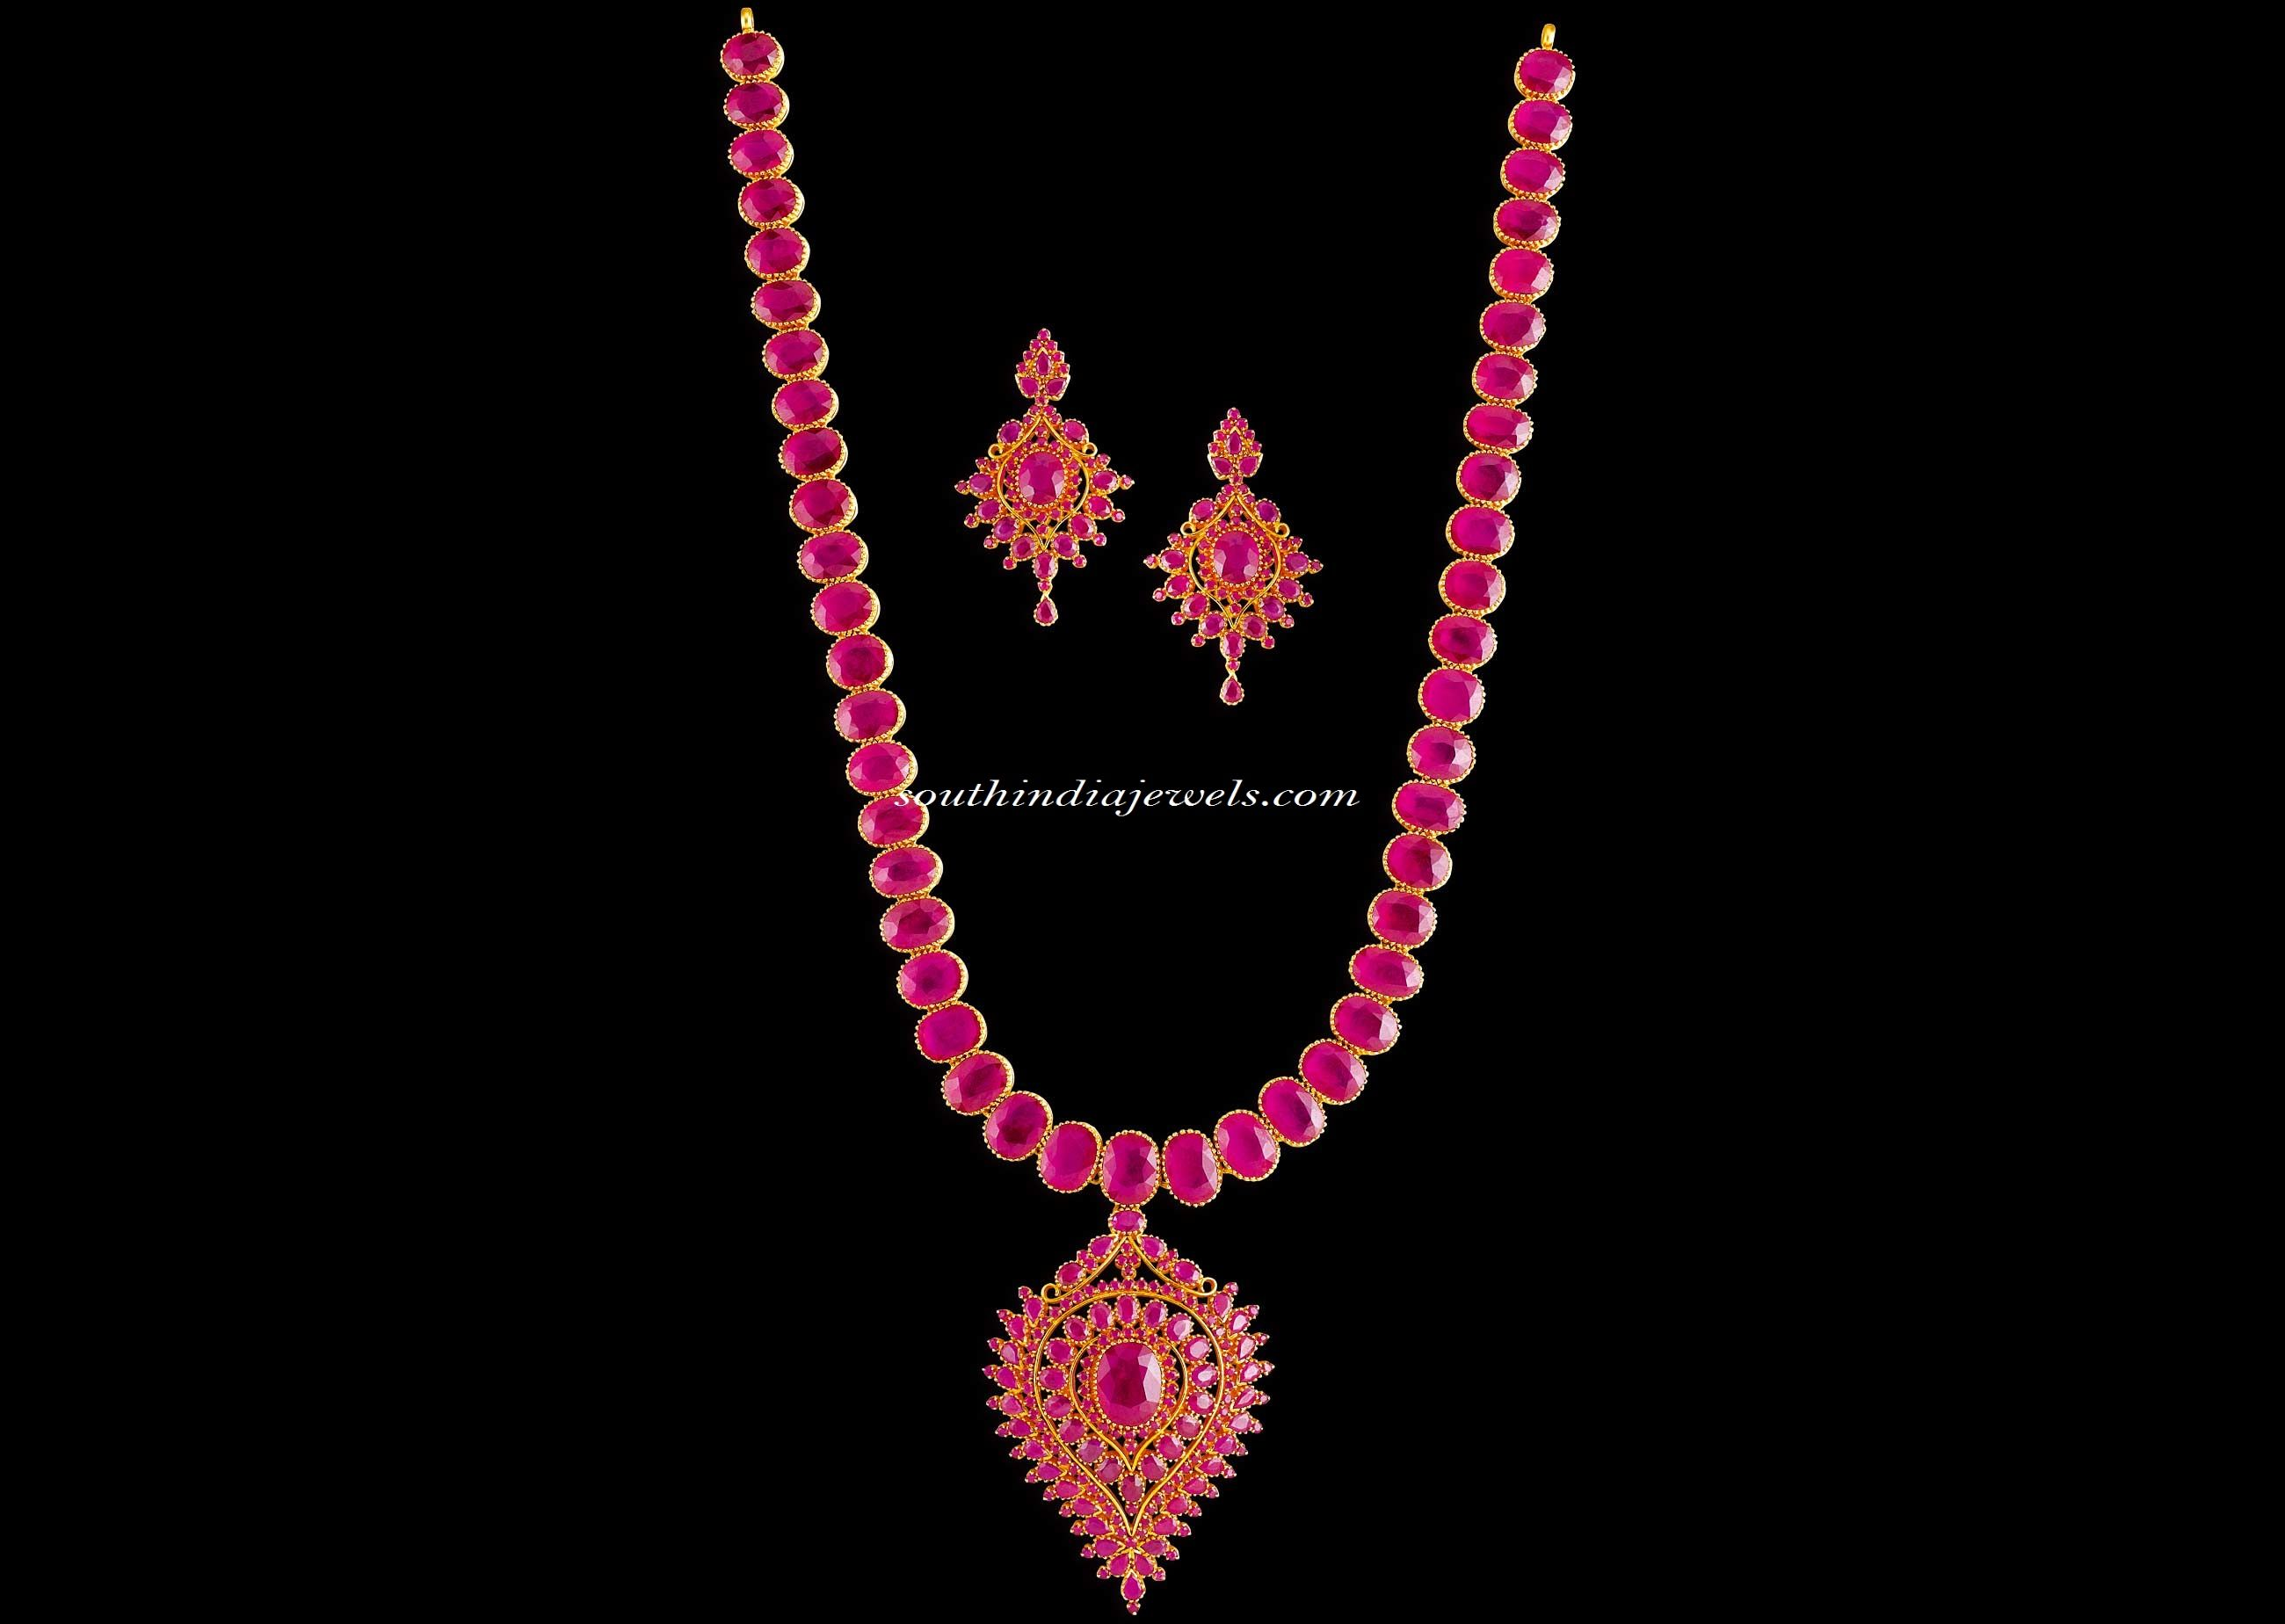 Pearl Jewellery Necklace >> Kalyan Jewellers Diamond Jewellery collections Part4 ~ South India Jewels